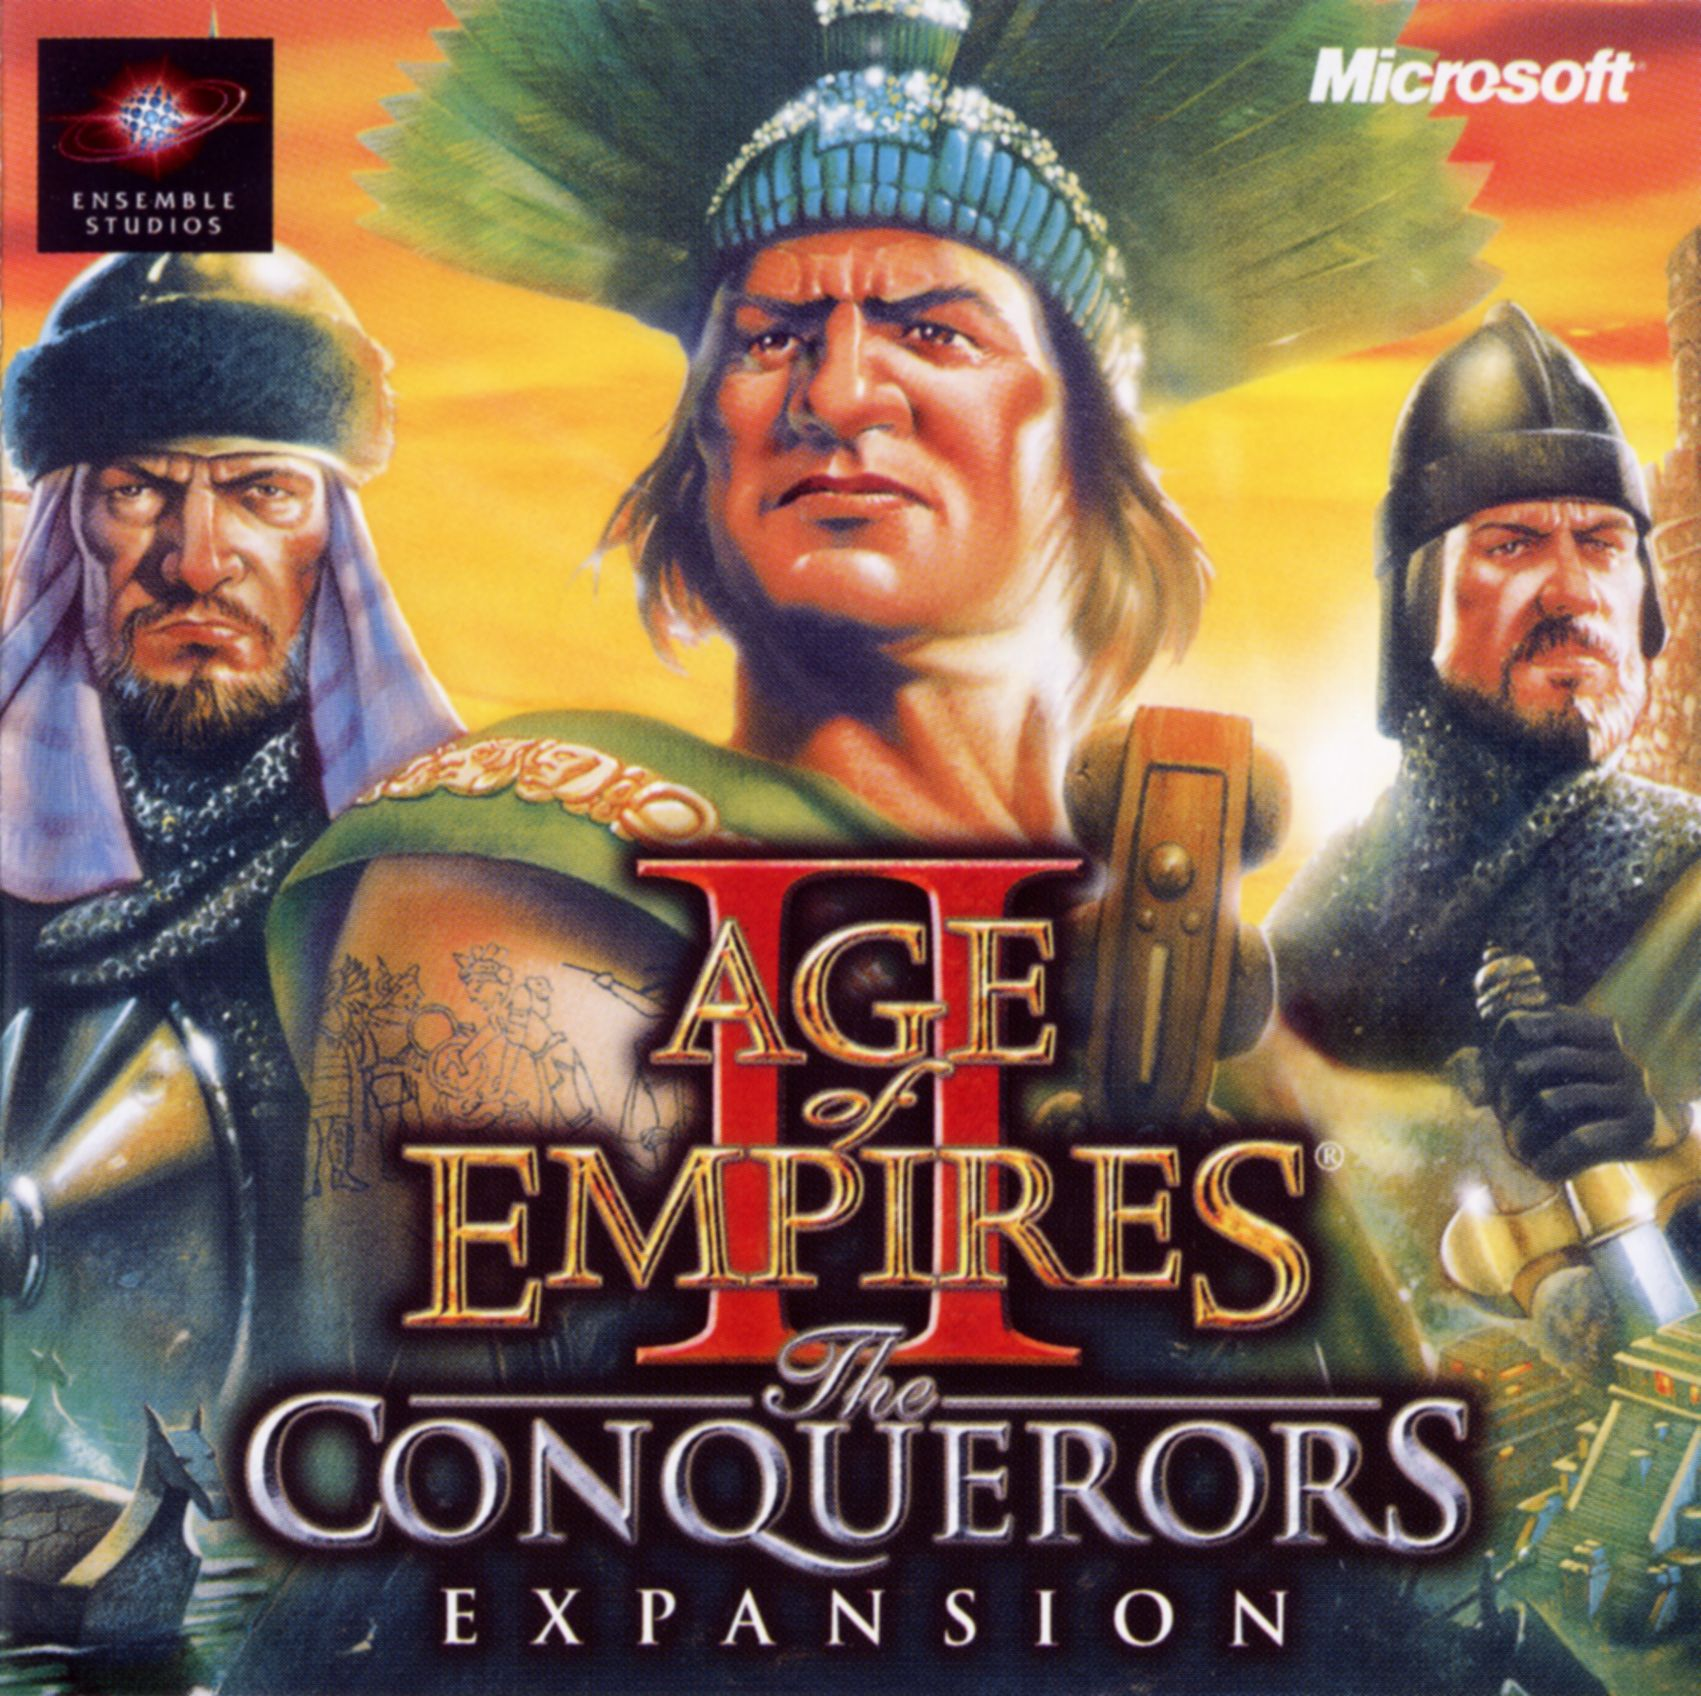 http://www.ilbaluardo.com/Cover/Pc/Age%20of%20Empires%202%20-%20The%20Conquerors%20-%20Front.jpg